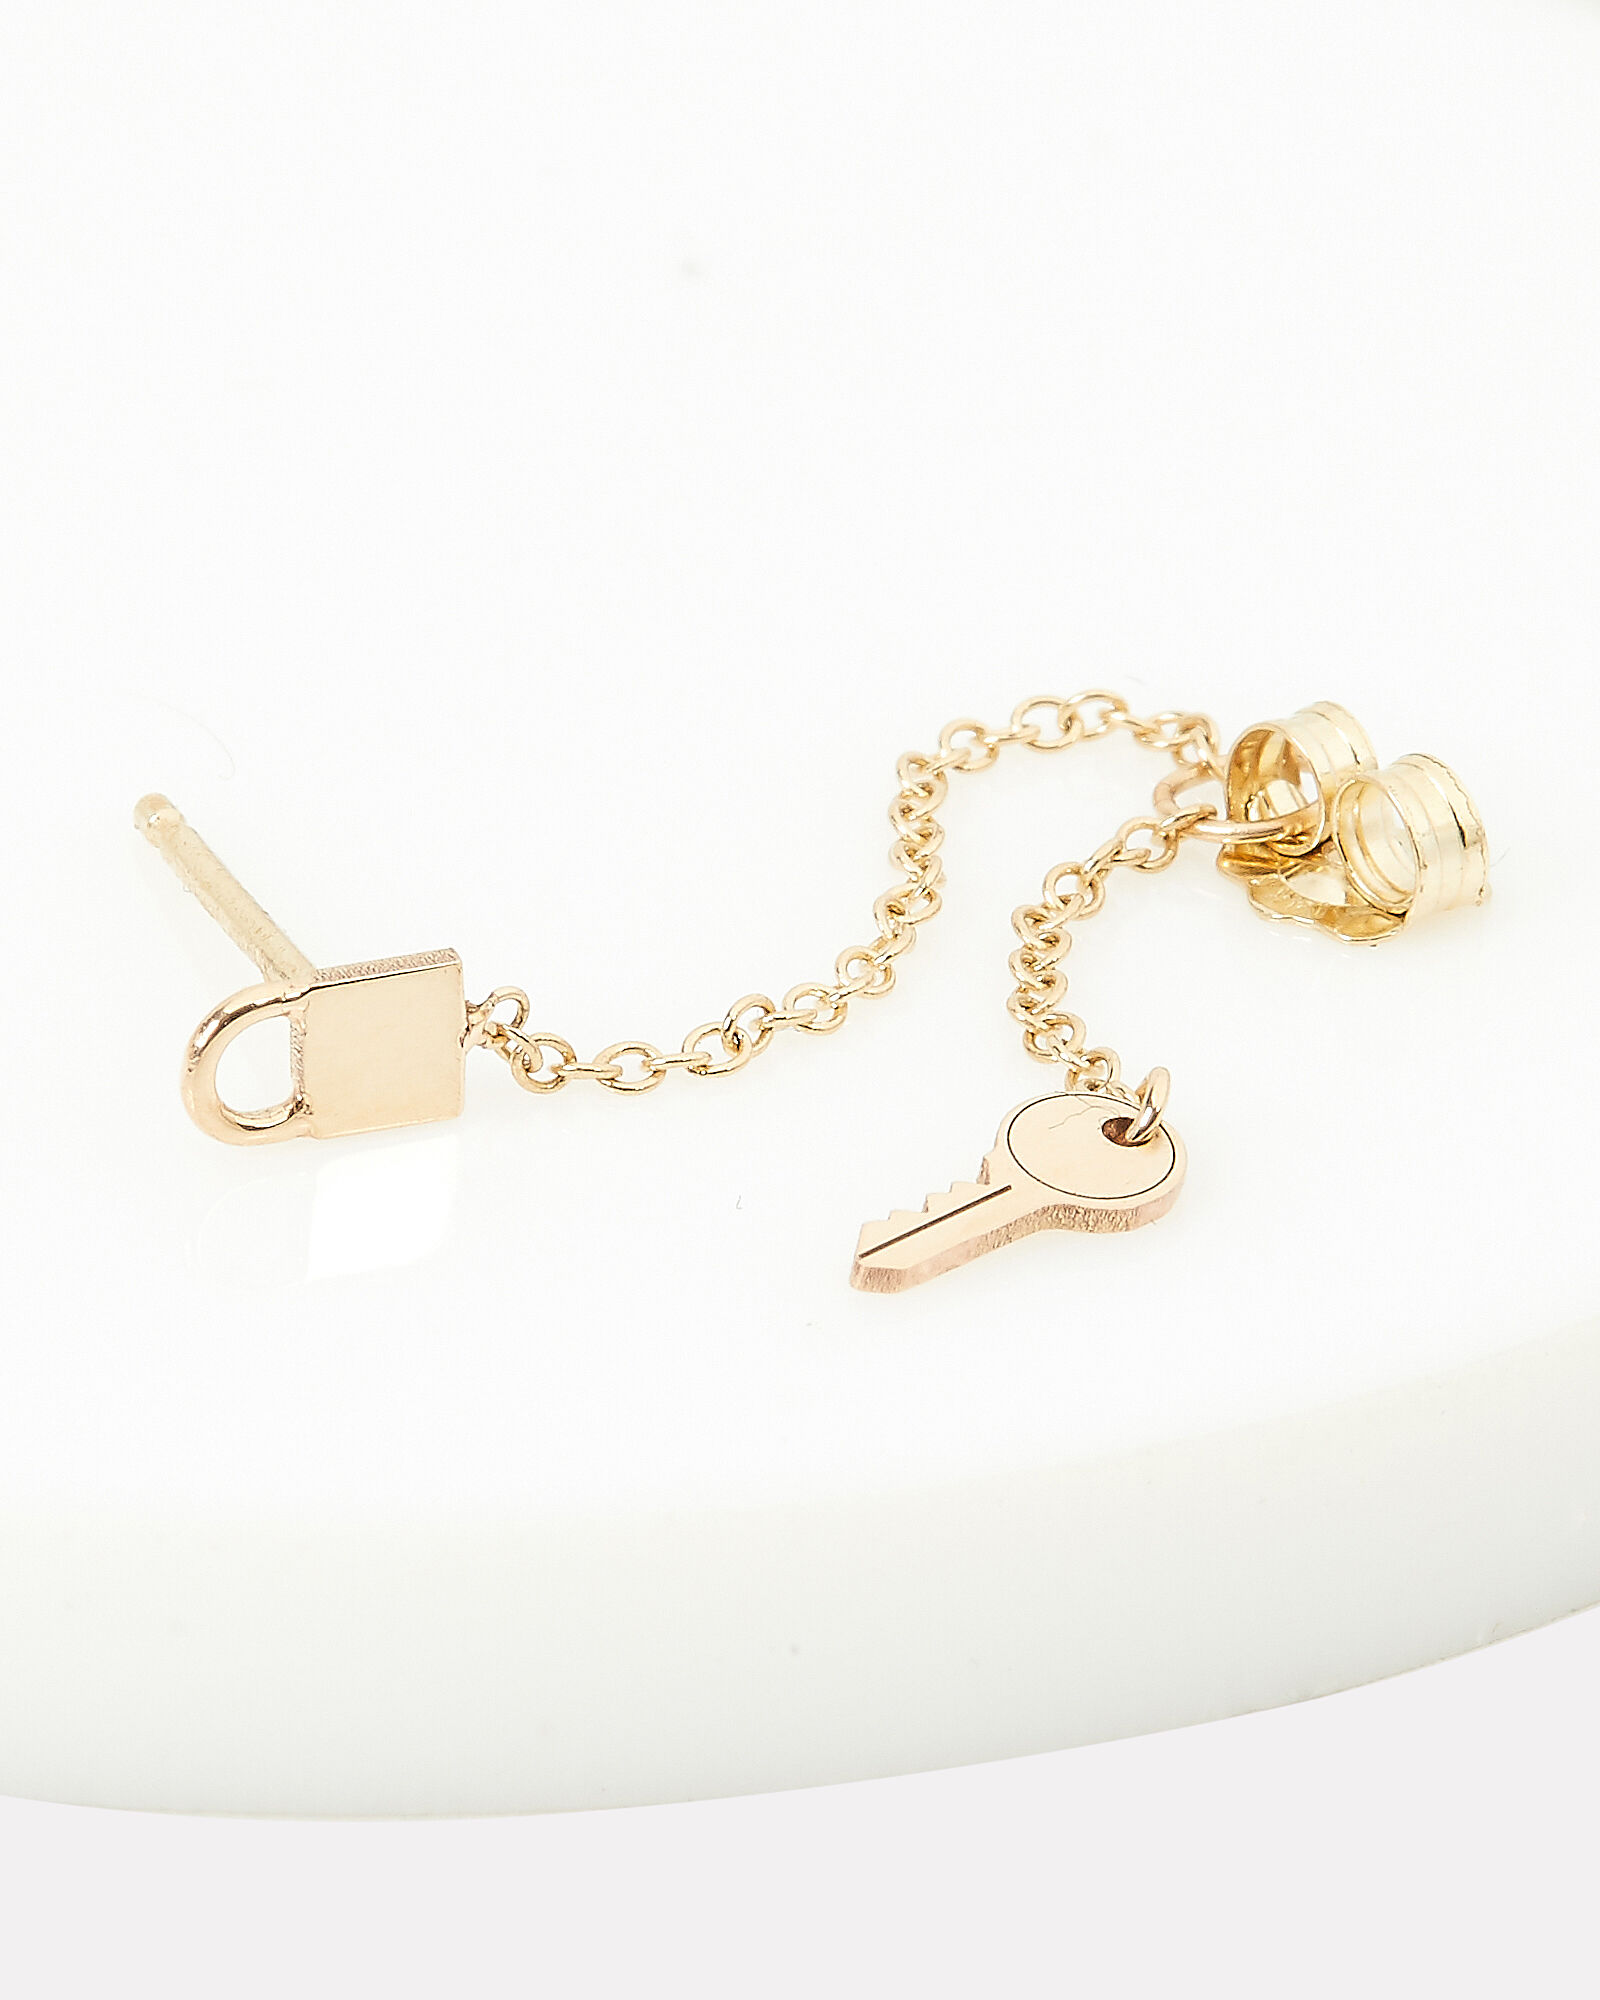 Itty Bitty Padlock Key Single Earring, GOLD, hi-res